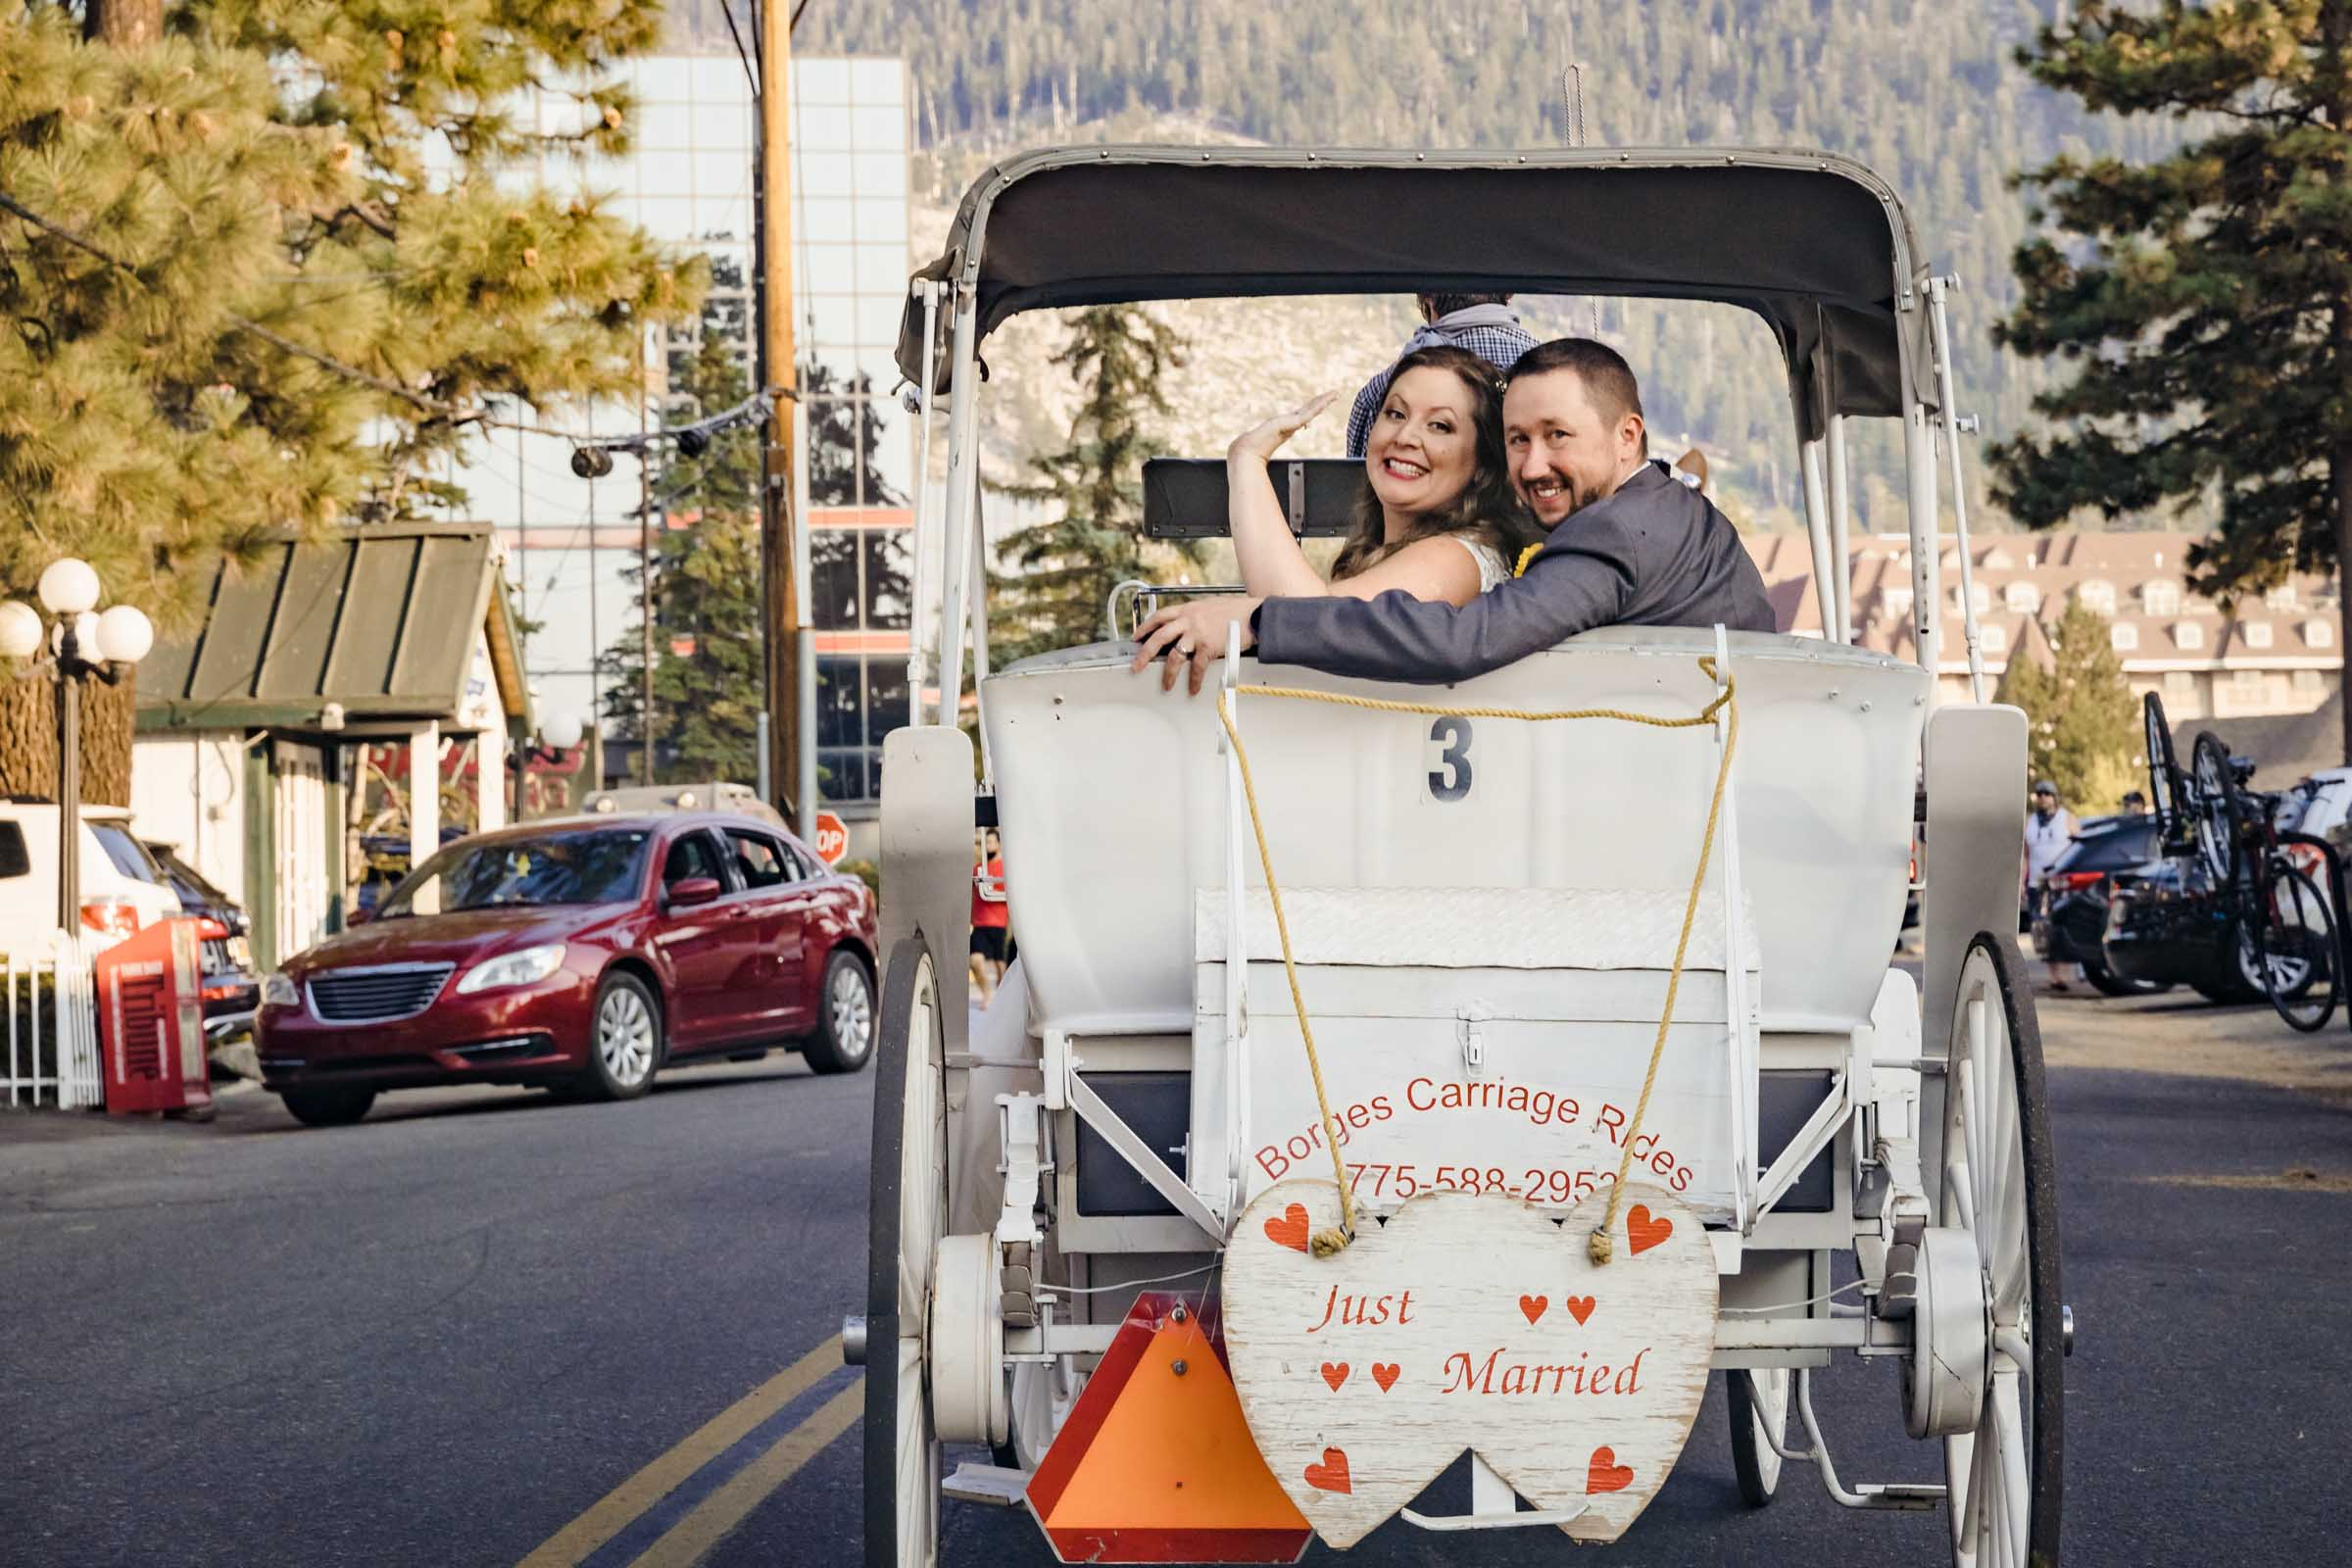 Newlywed carriage taking them to the reception at Basecamp Hotel